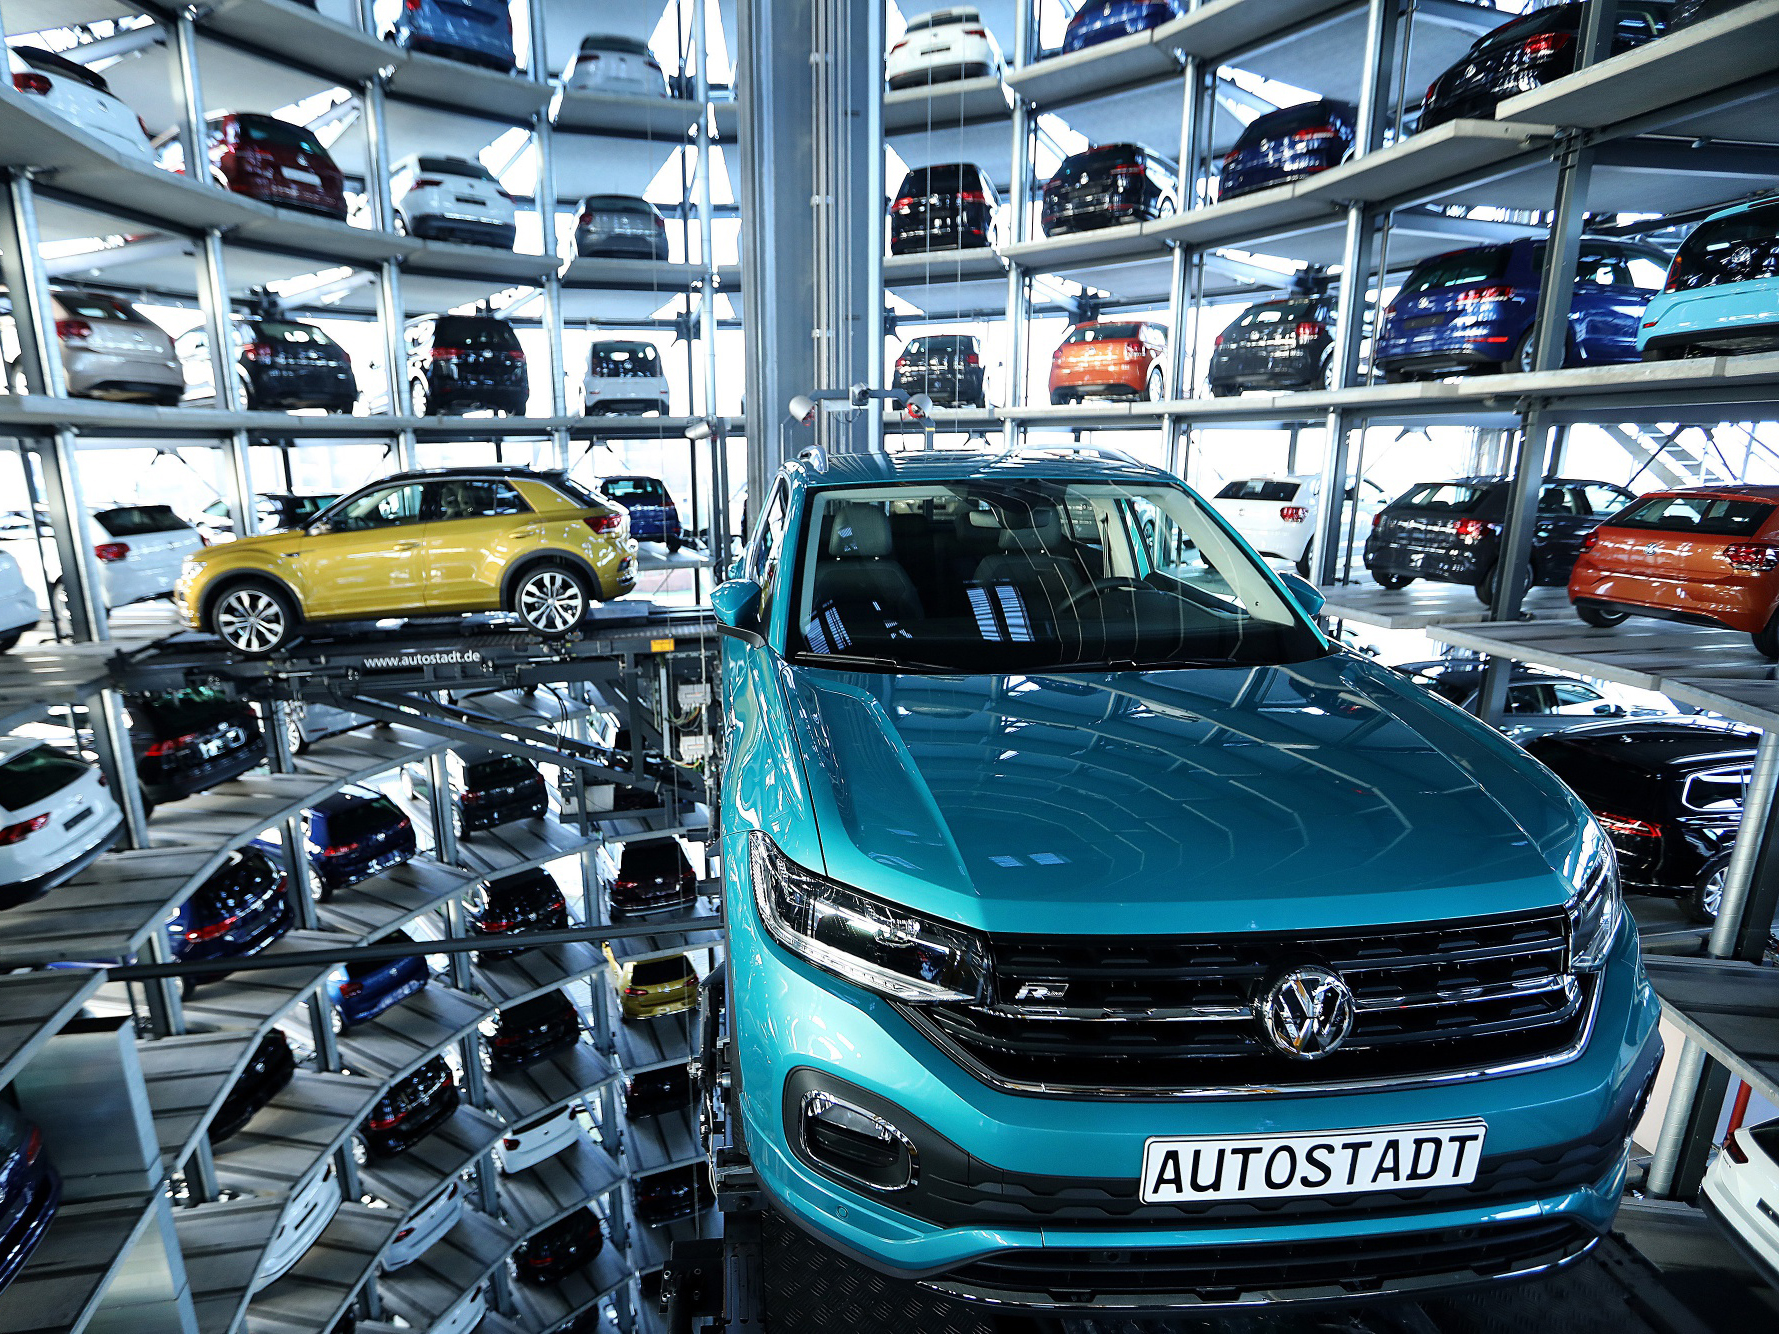 Carmakers Are Slow to Make Progress Toward Digital Culture, Global Study Says